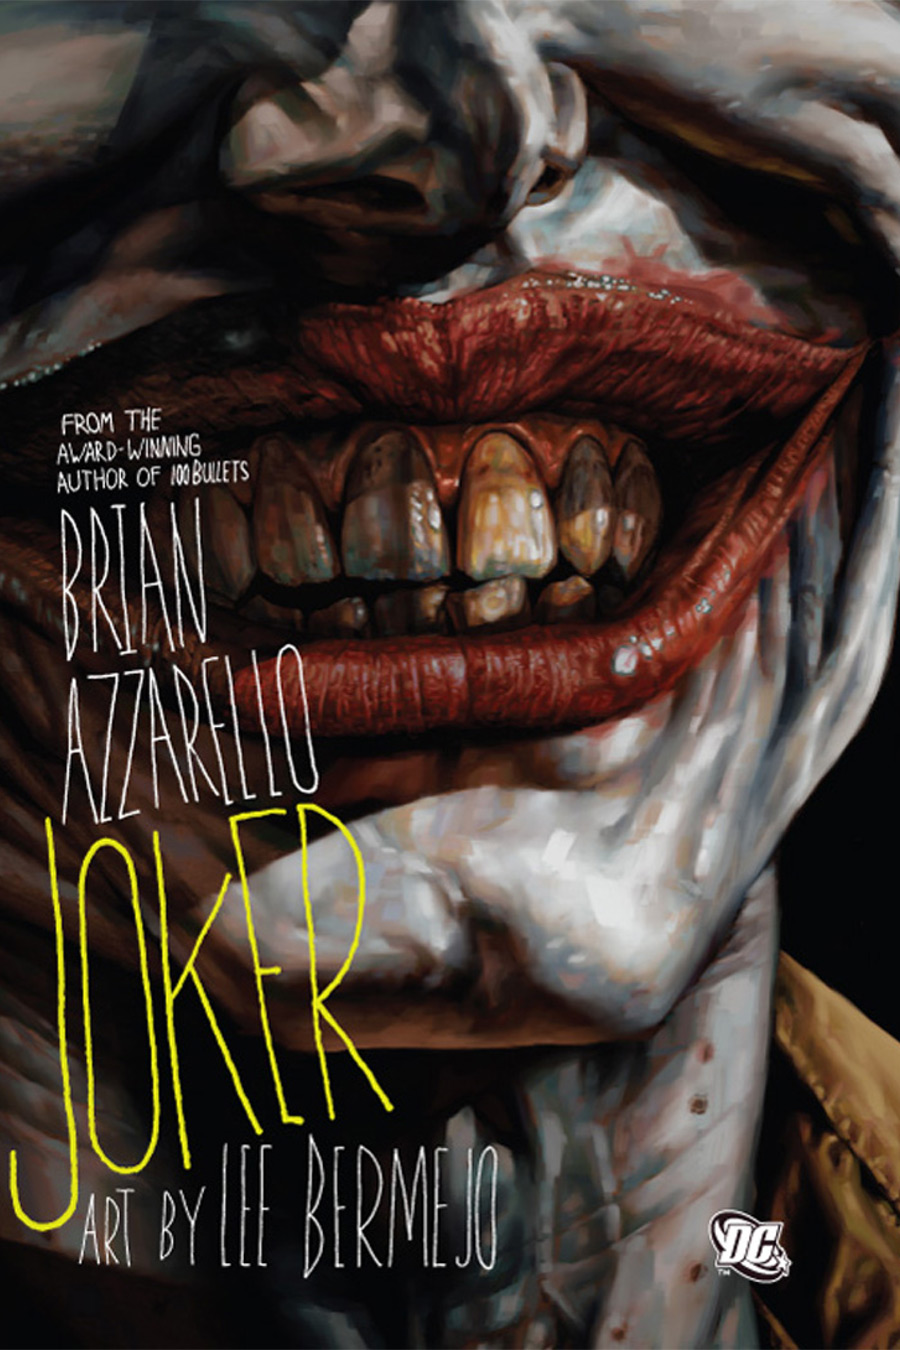 Amateurs de comics ? Joker-review